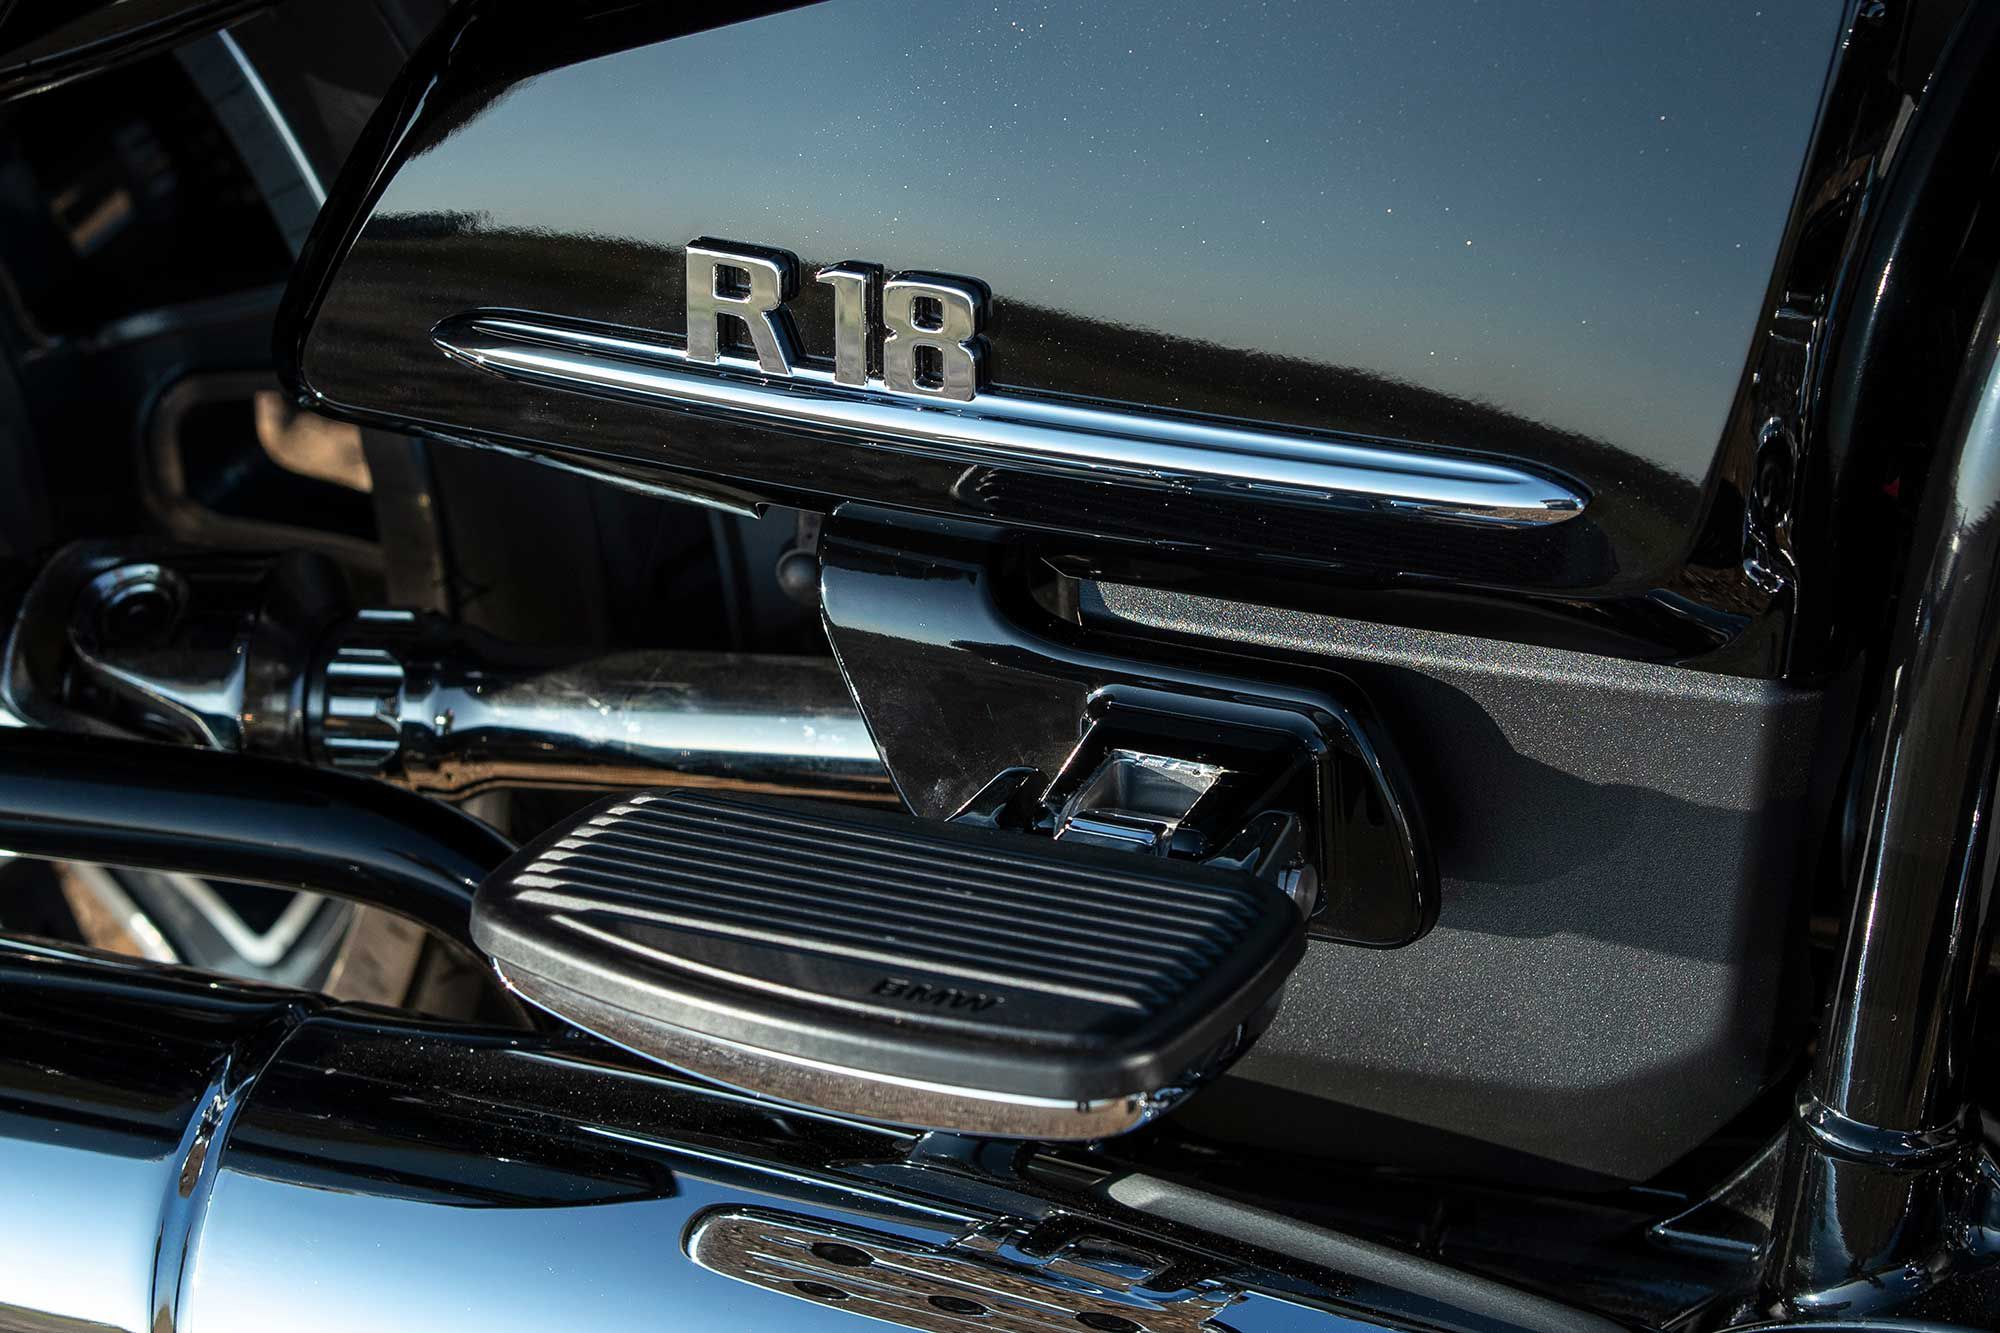 Although passenger floorboards are a welcome amenity, they cover the handsome R 18 badge when folded up.